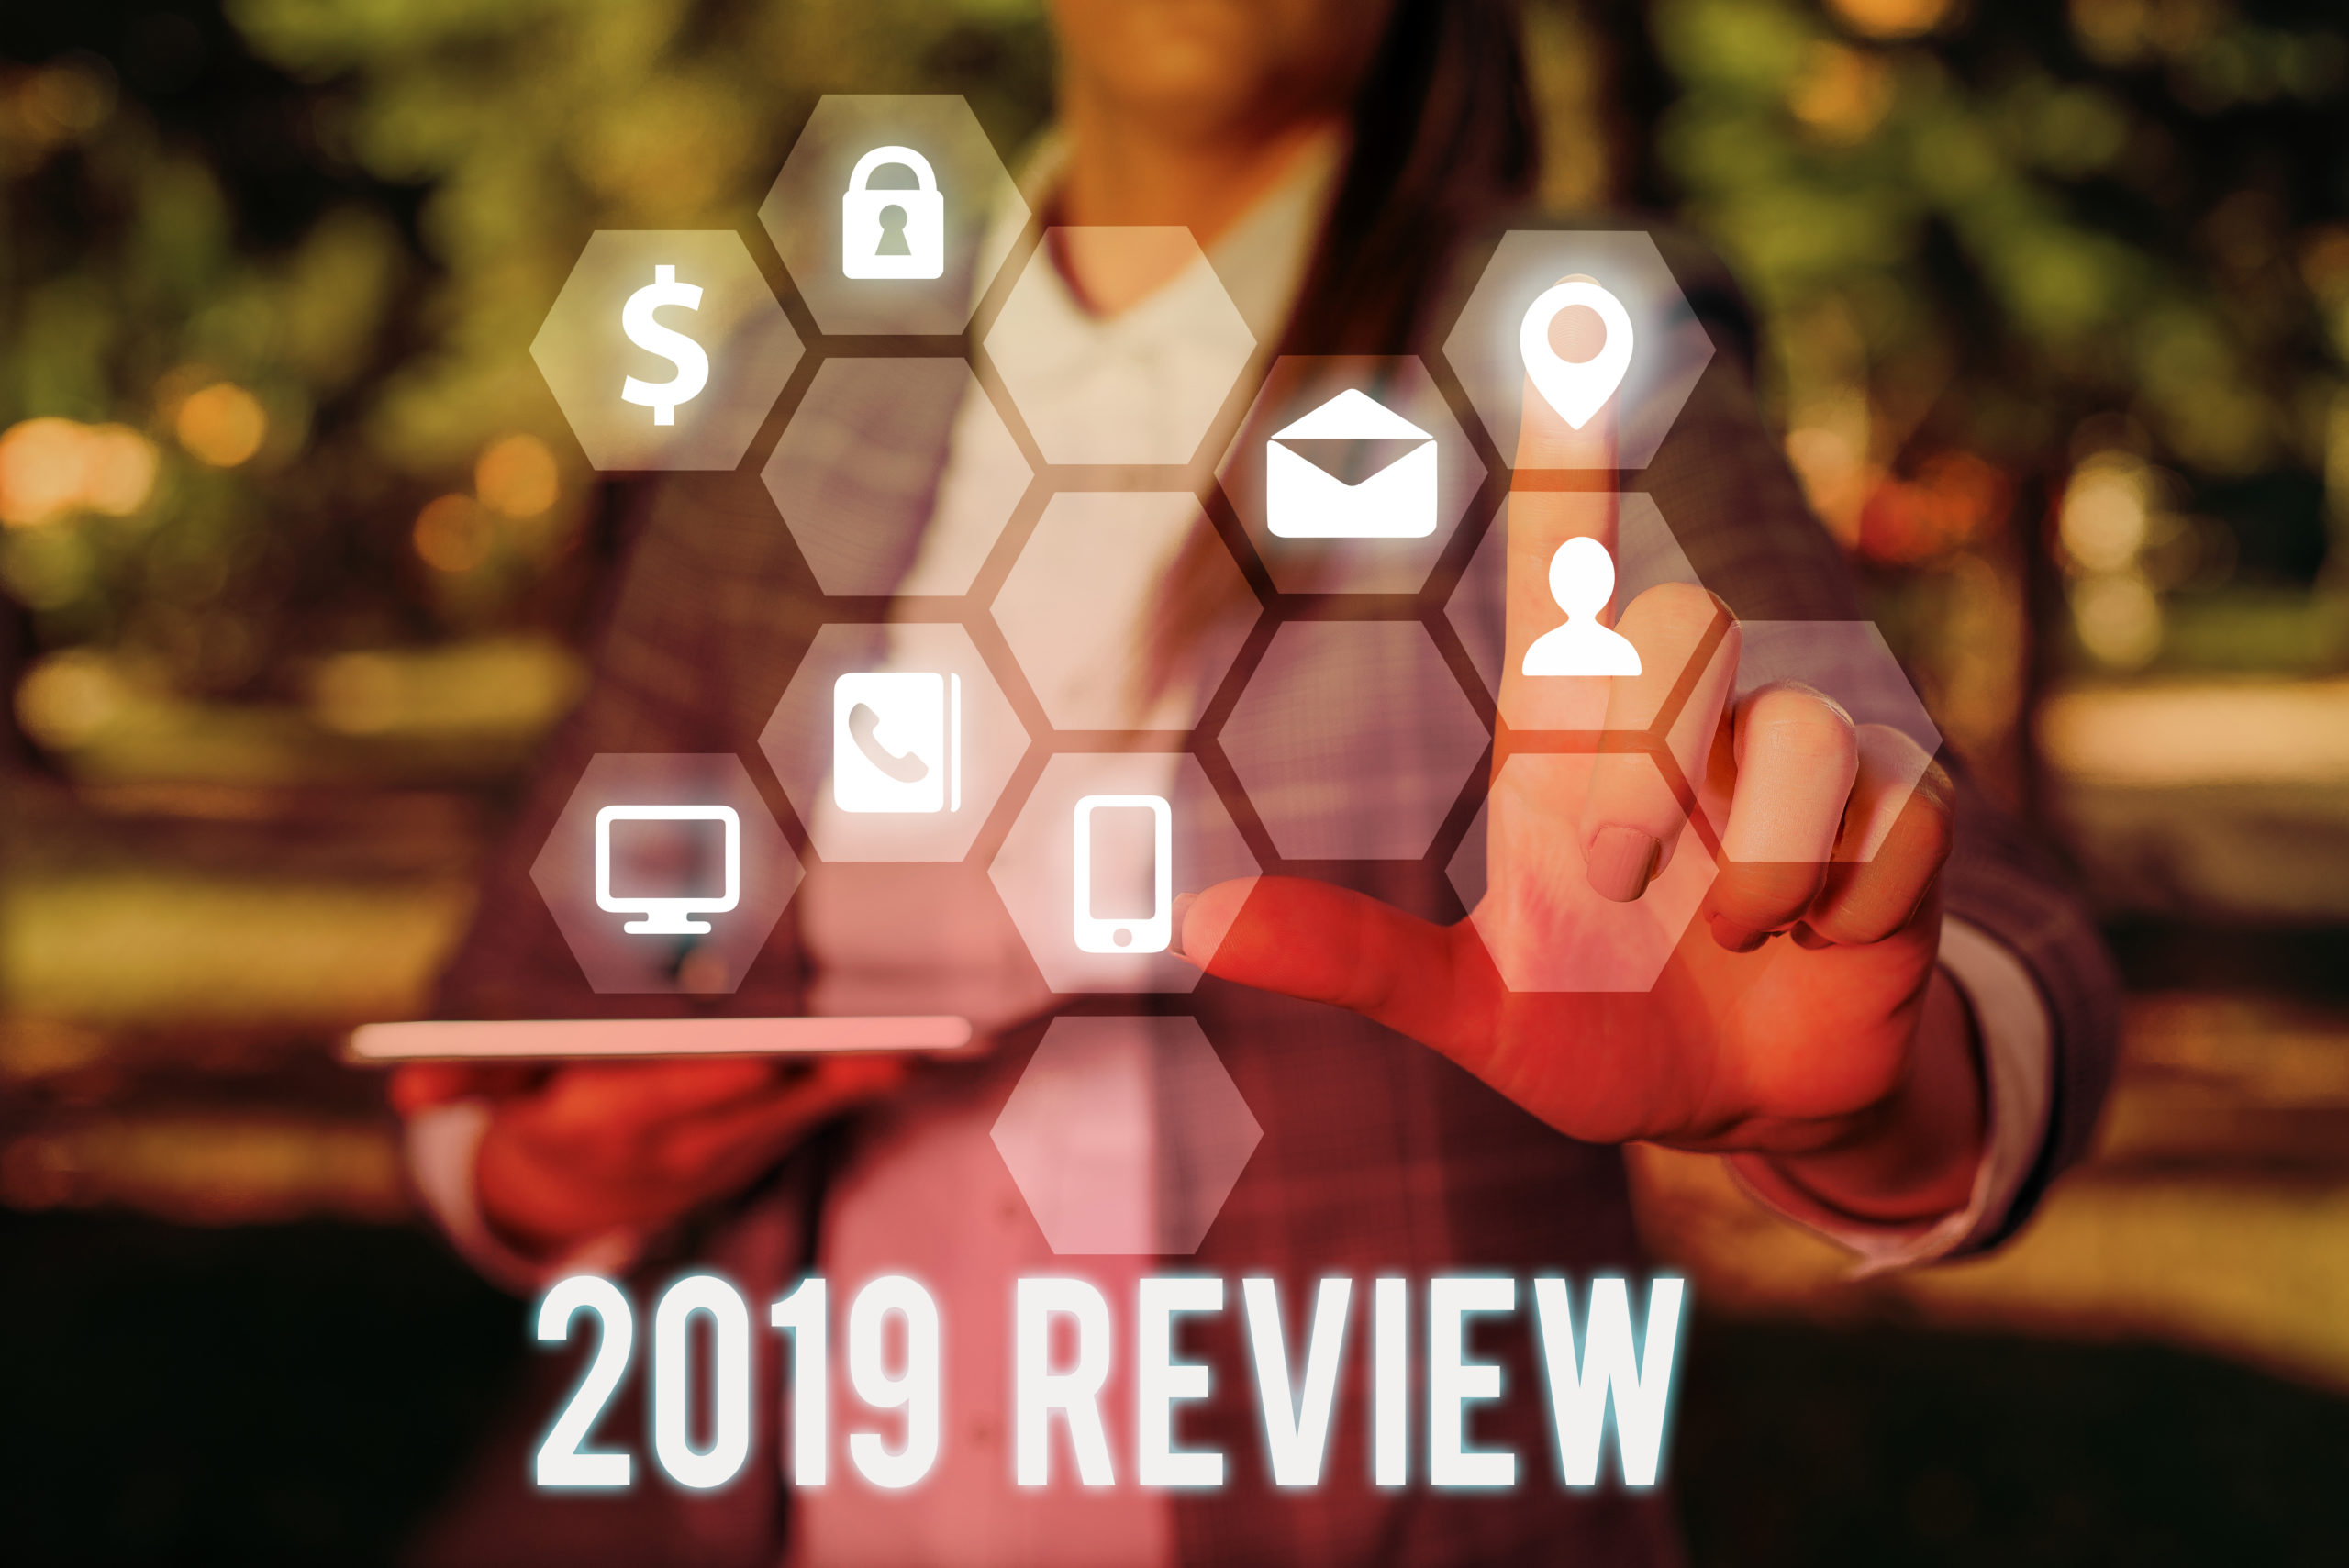 2019 Employment Law in Review